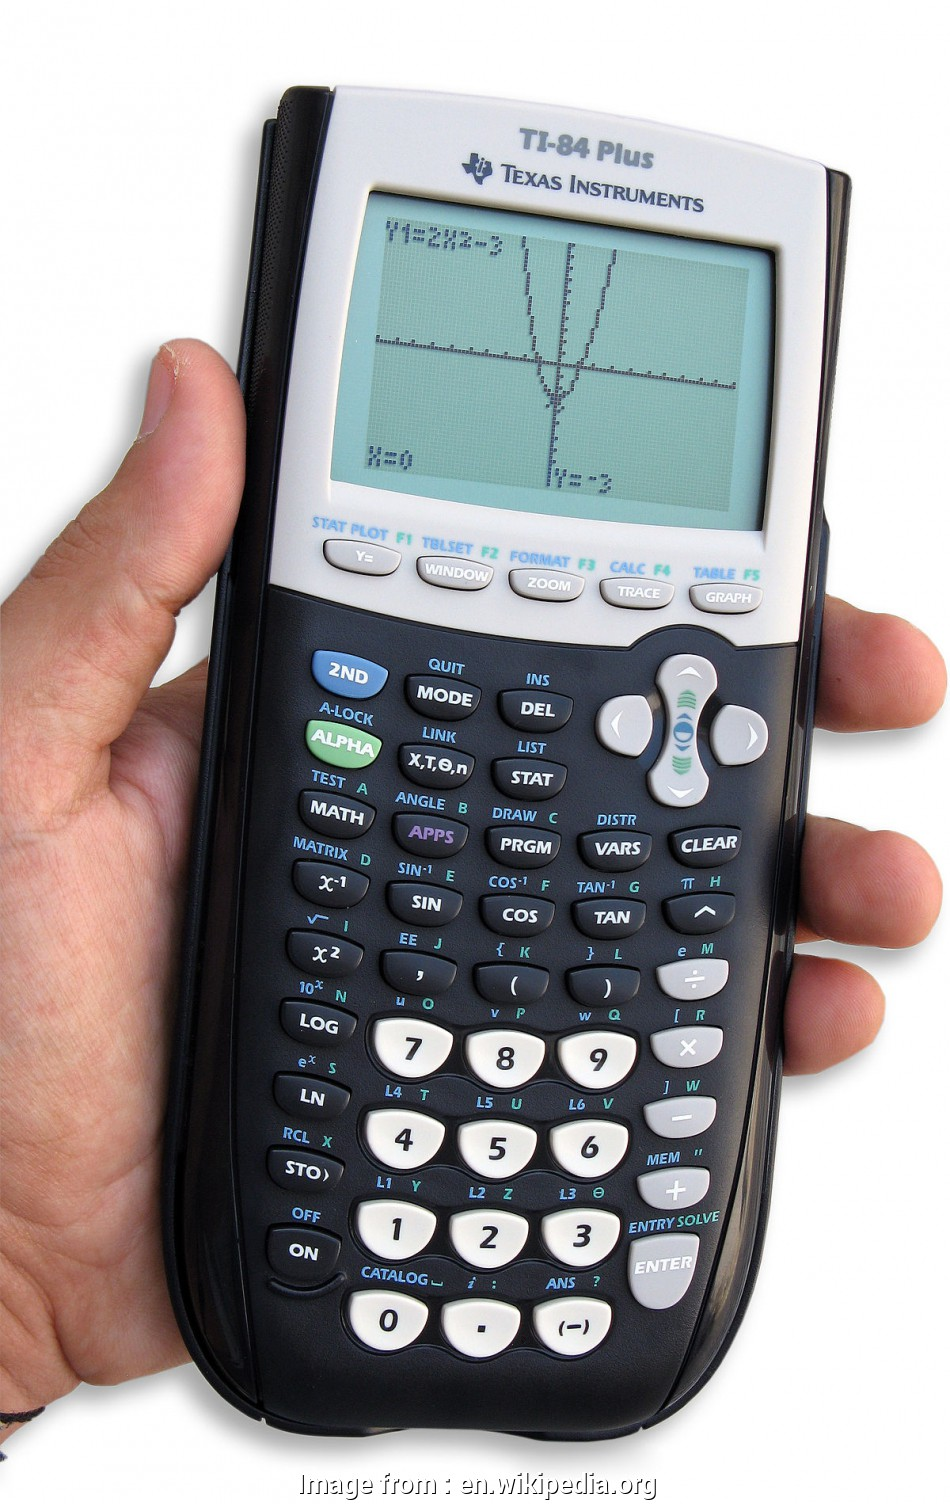 wire gauge combination calculator Graphing calculator, Wikipedia Wire Gauge Combination Calculator Cleaver Graphing Calculator, Wikipedia Images